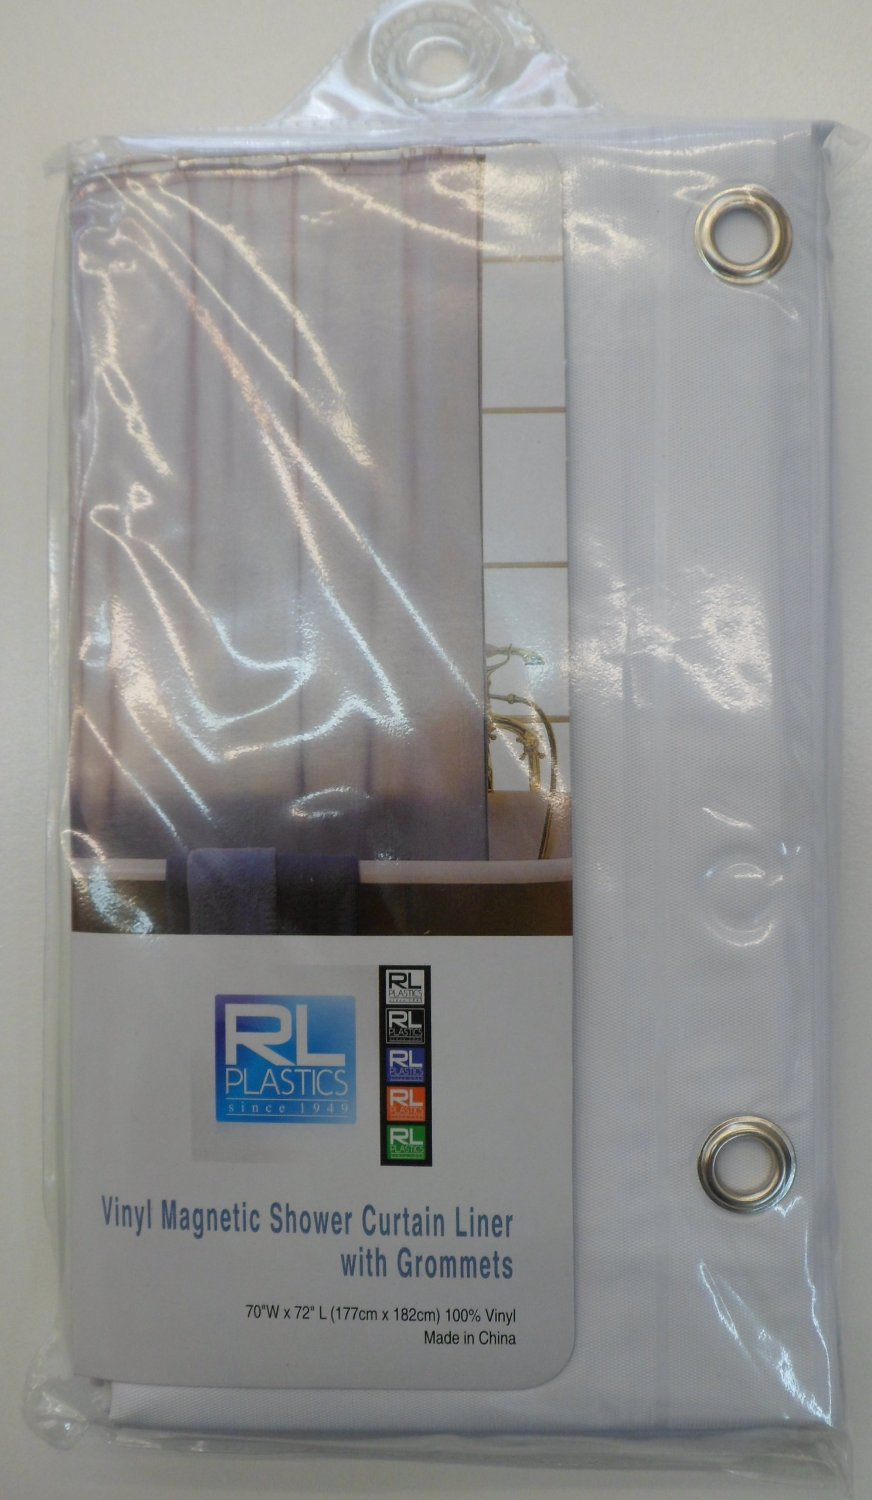 "RL Plastics 100% Vinyl White Magnetic Shower Curtain Liner with Grommets, Mildew and Water Resistant Standard Size 70"" X 72"""